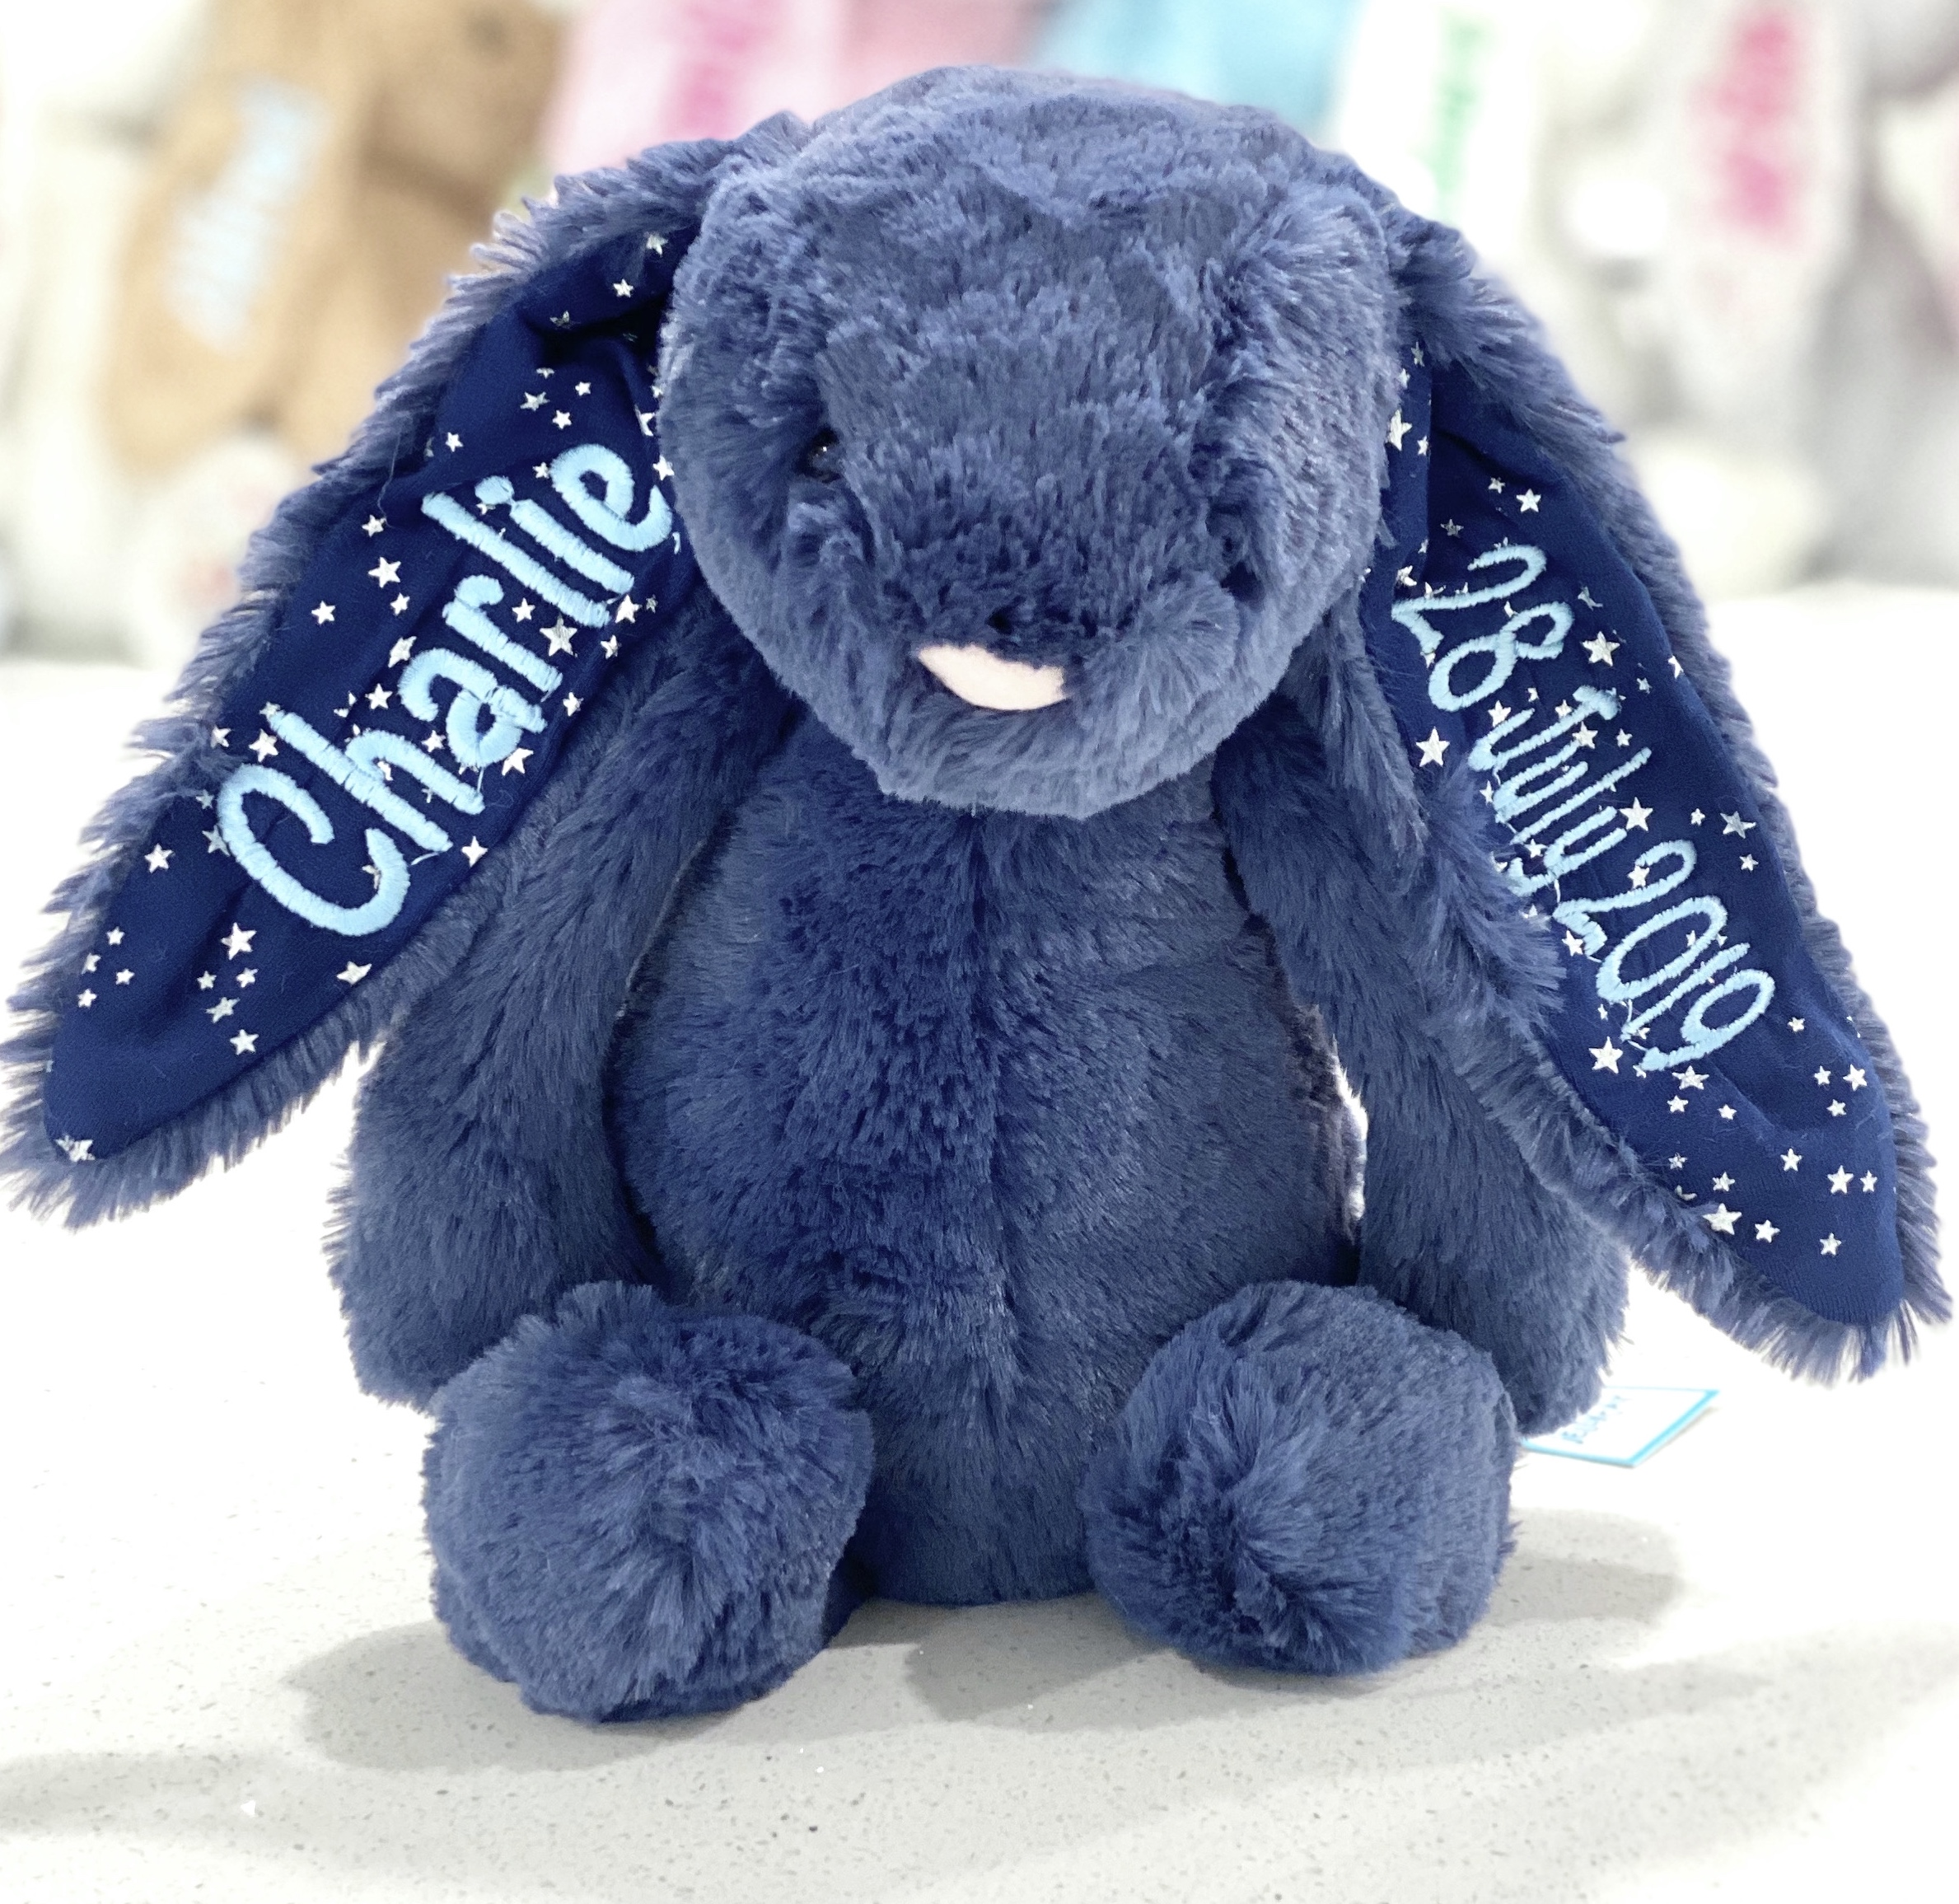 Stardust+bunny+navy+Jellycat+Bashful+Bunny+Personalised